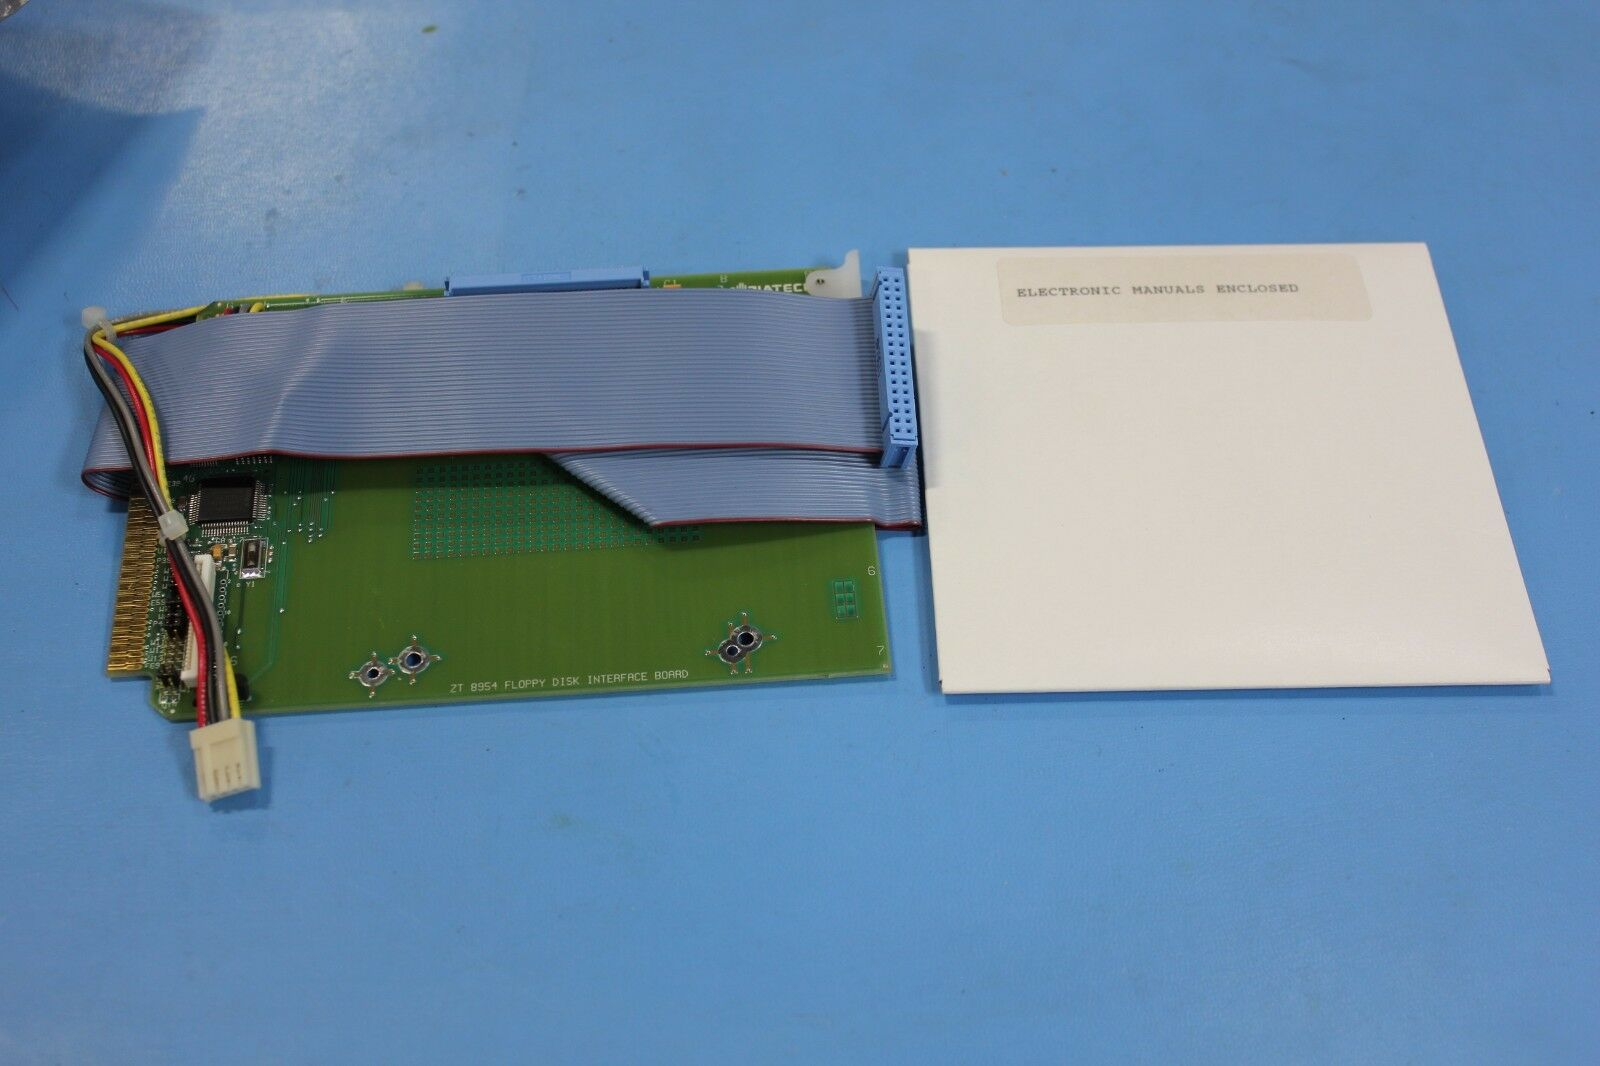 Lot 23 - UNUSED ZIATECH STANDARD BUS FLOPPY DISK INTERFACE BOARD